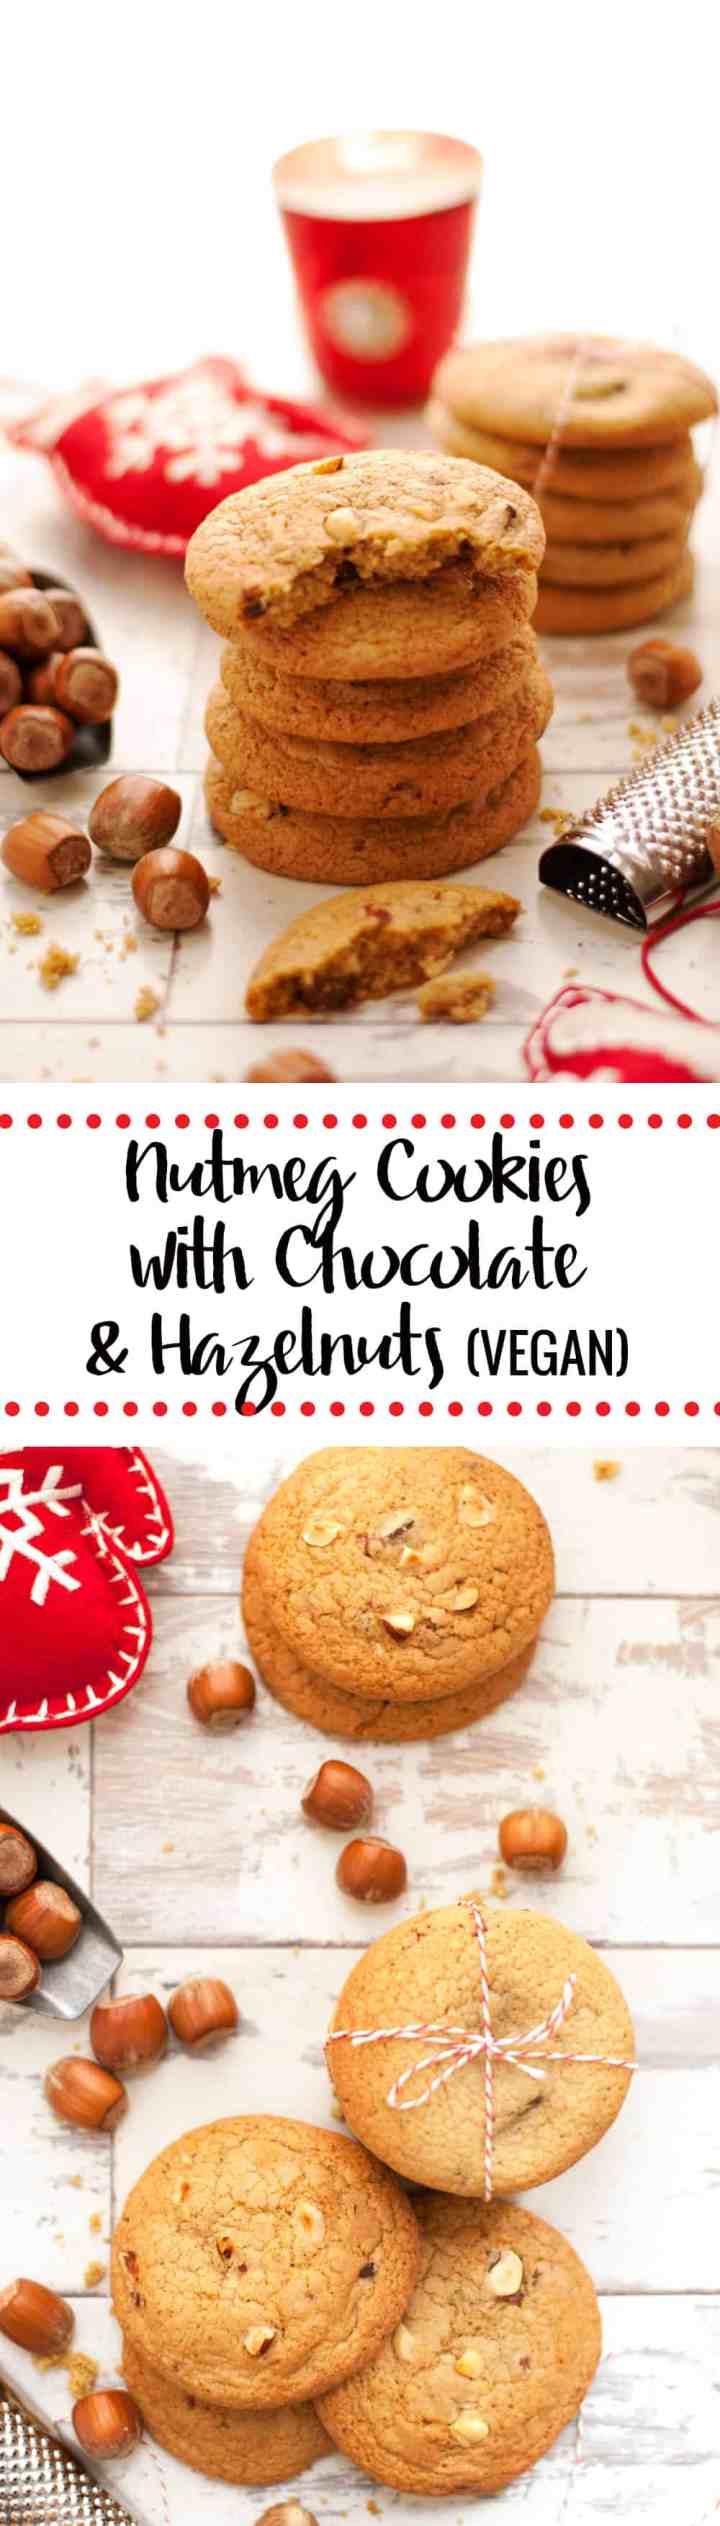 Nutmeg Cookies with Chocolate and Hazelnut. Perfect Christmas Cookie, crisp on the outside, soft and chewy inside | via @annabanana.co